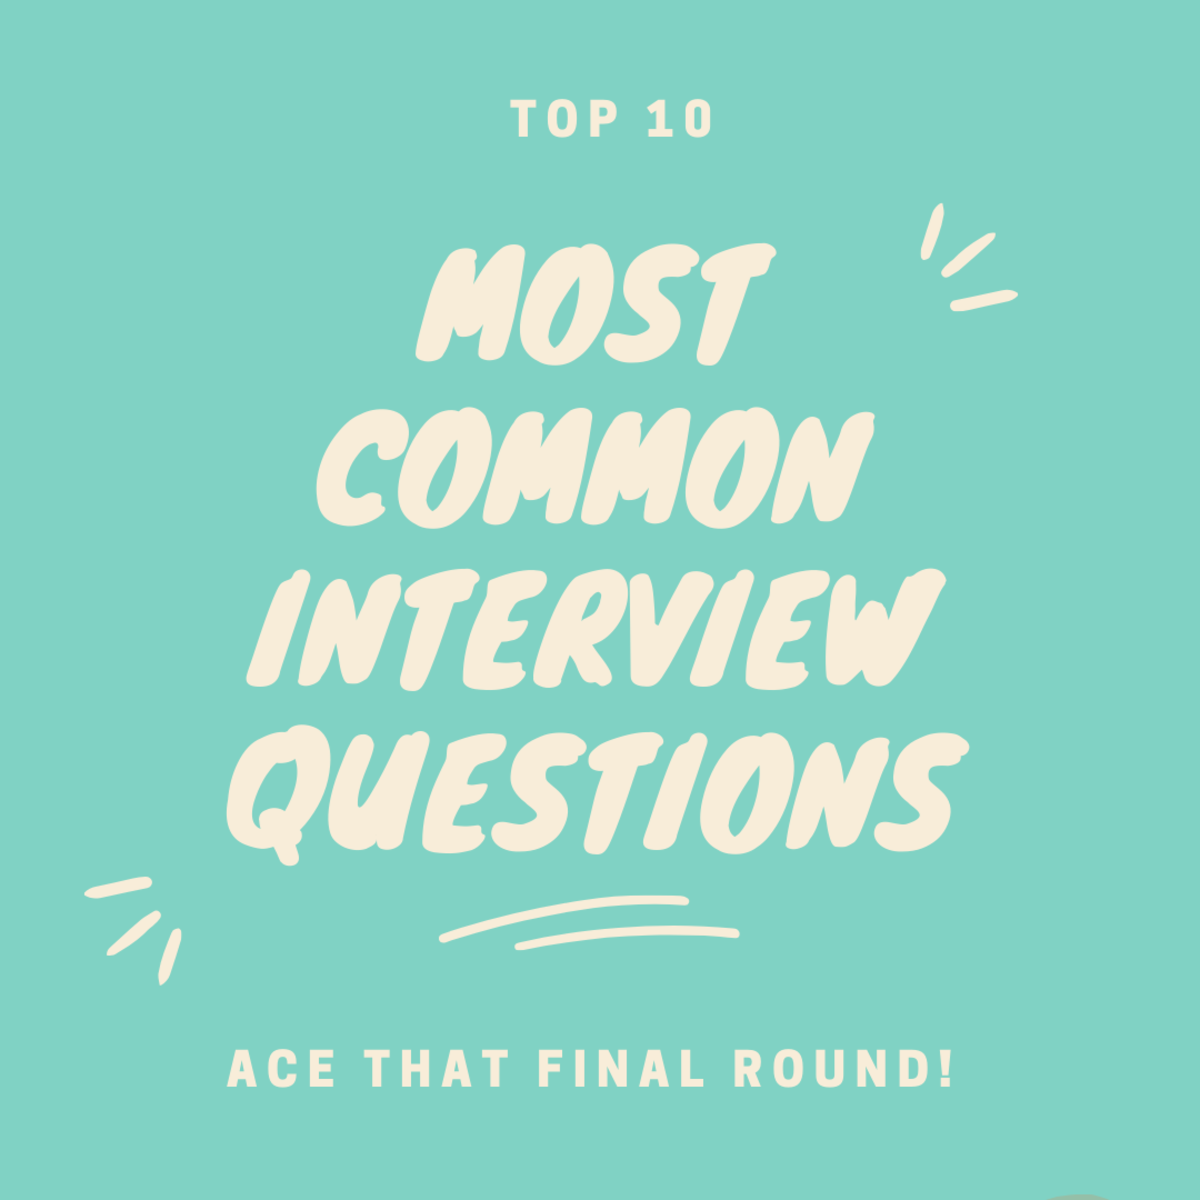 That final round of interviews can be tricky—learn how to be prepared!